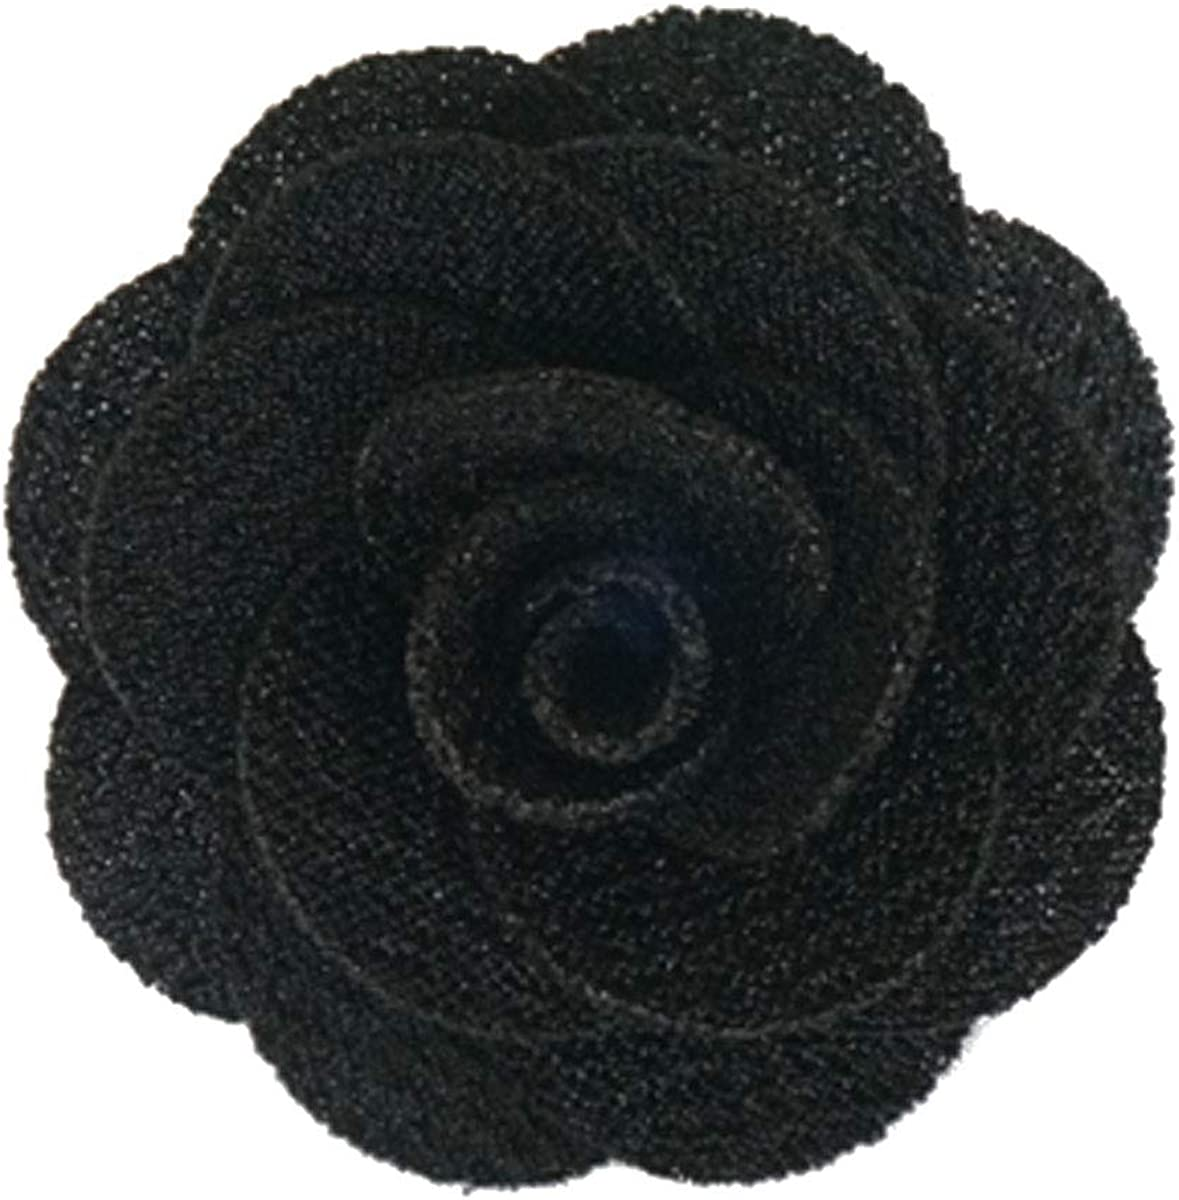 Sunny Home Men's Lapel Flower Handmade Boutonniere Pin for Suit